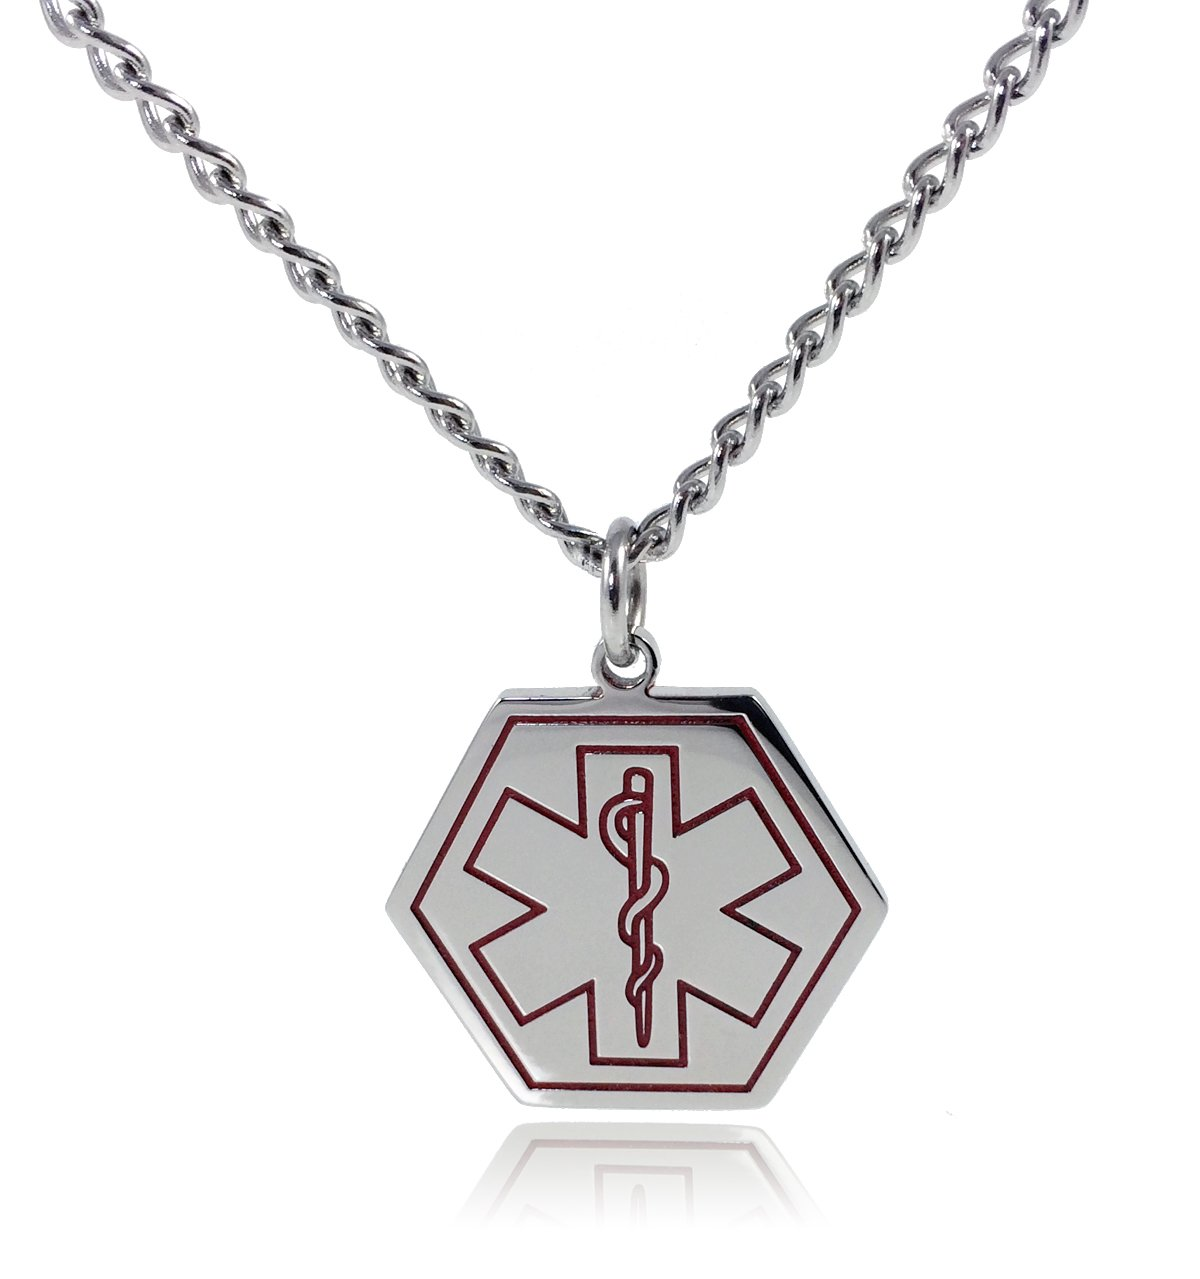 Max Petals - Type 1 Diabetes Medical Alert ID Stainless Steel Pendant Necklace with 26'' Chain